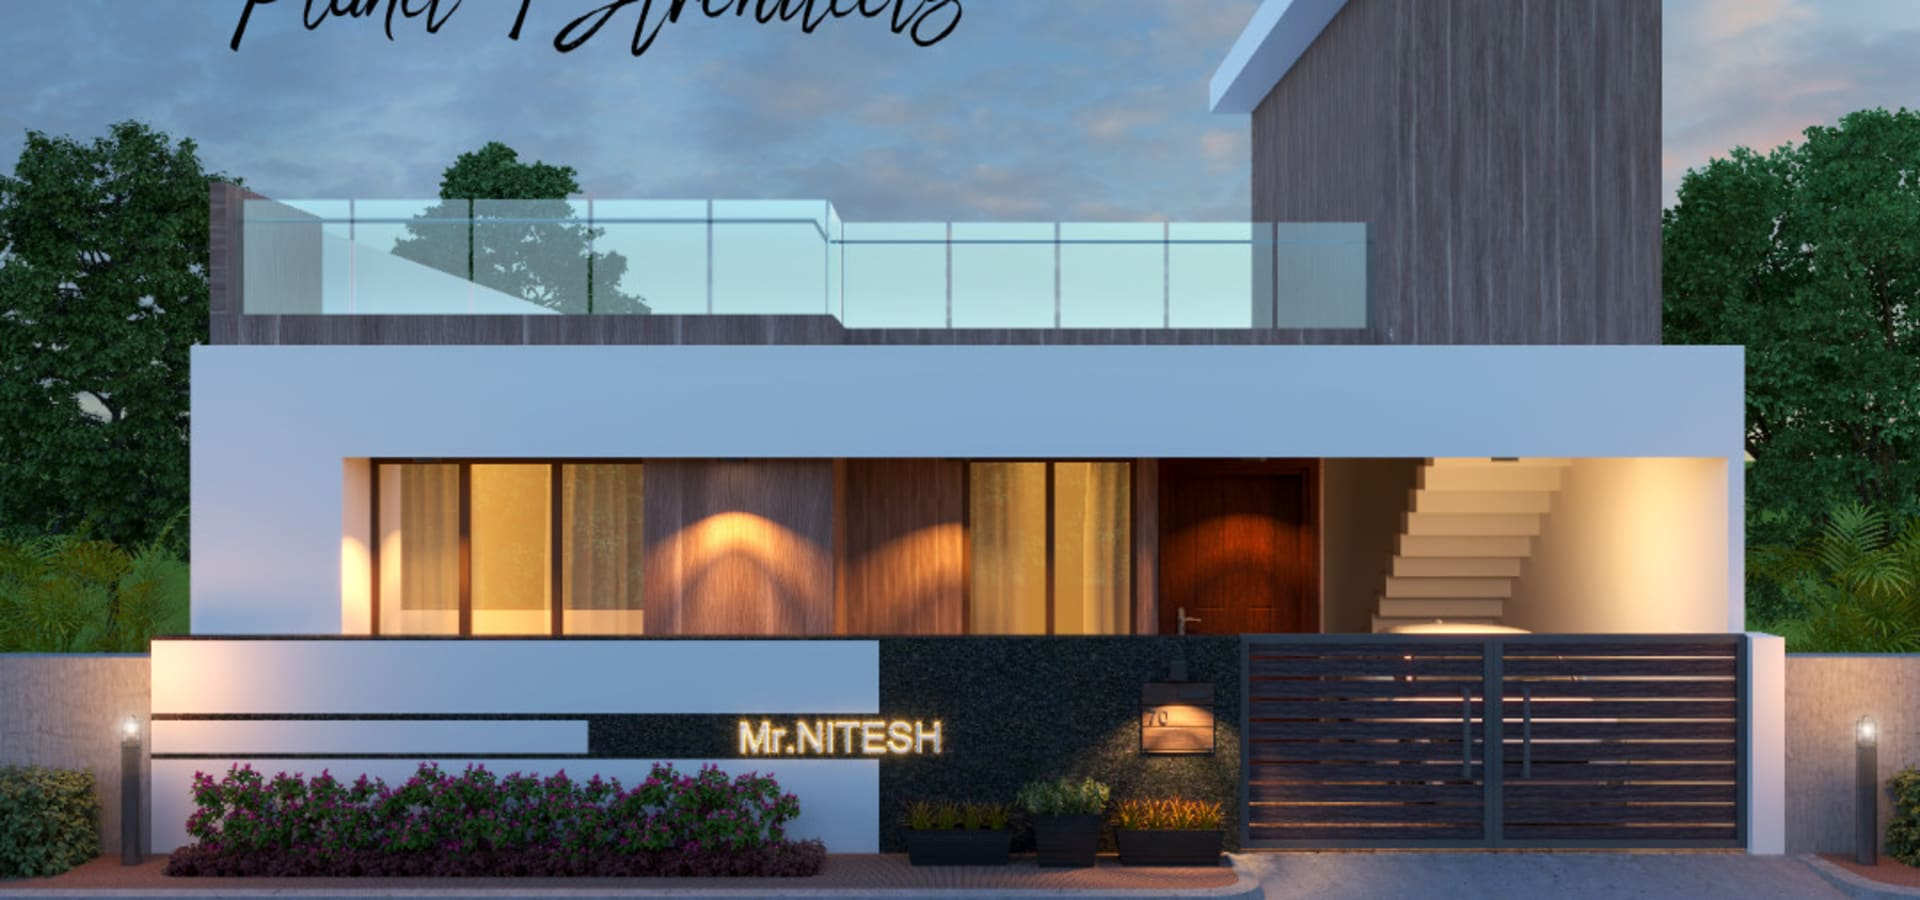 Planet 9 Architects And Interior Designers Architects In Bhopal Homify